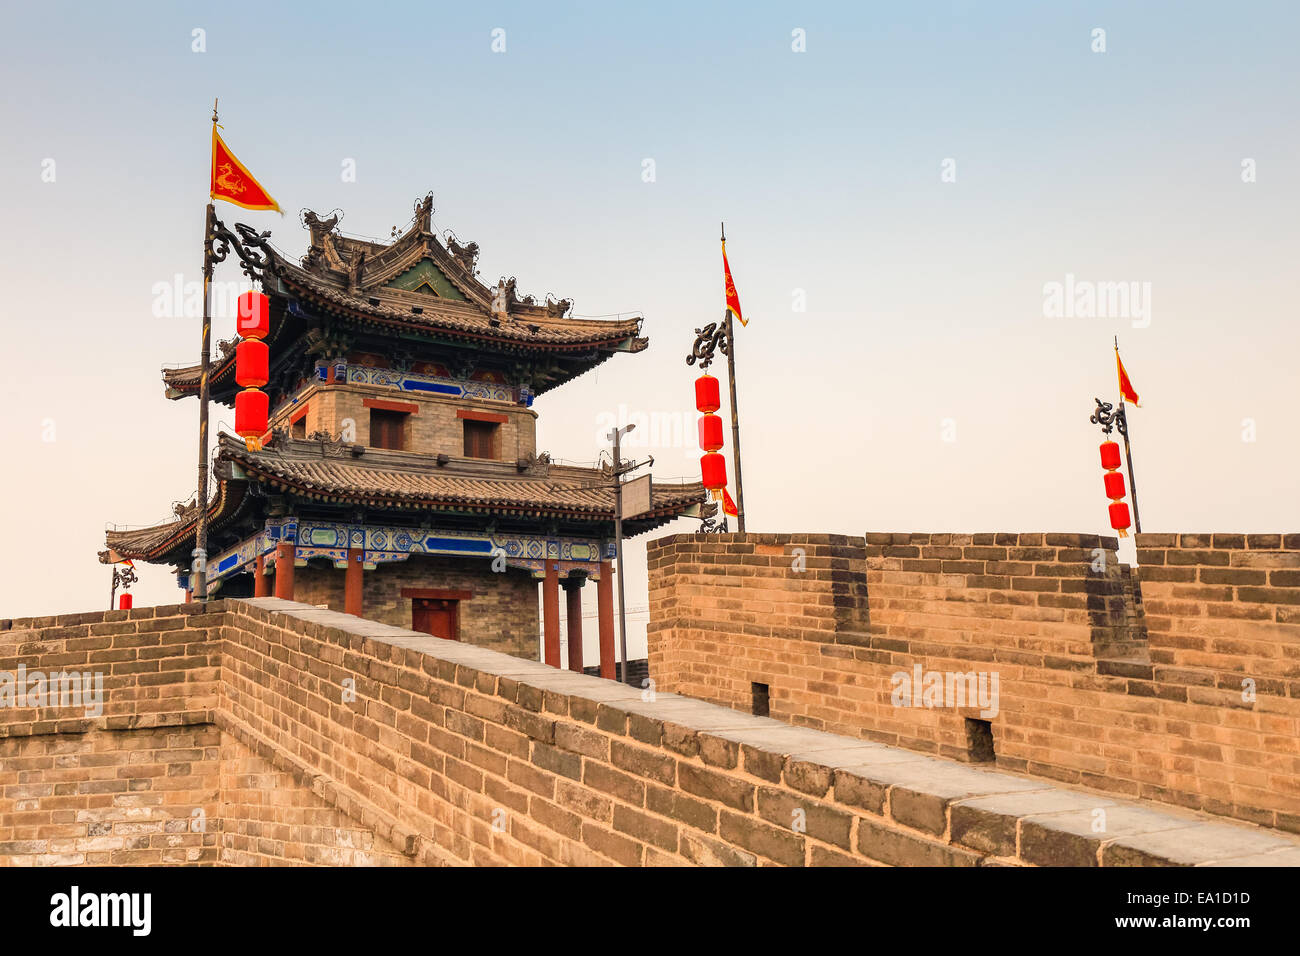 ancient turret on xian city wall - Stock Image